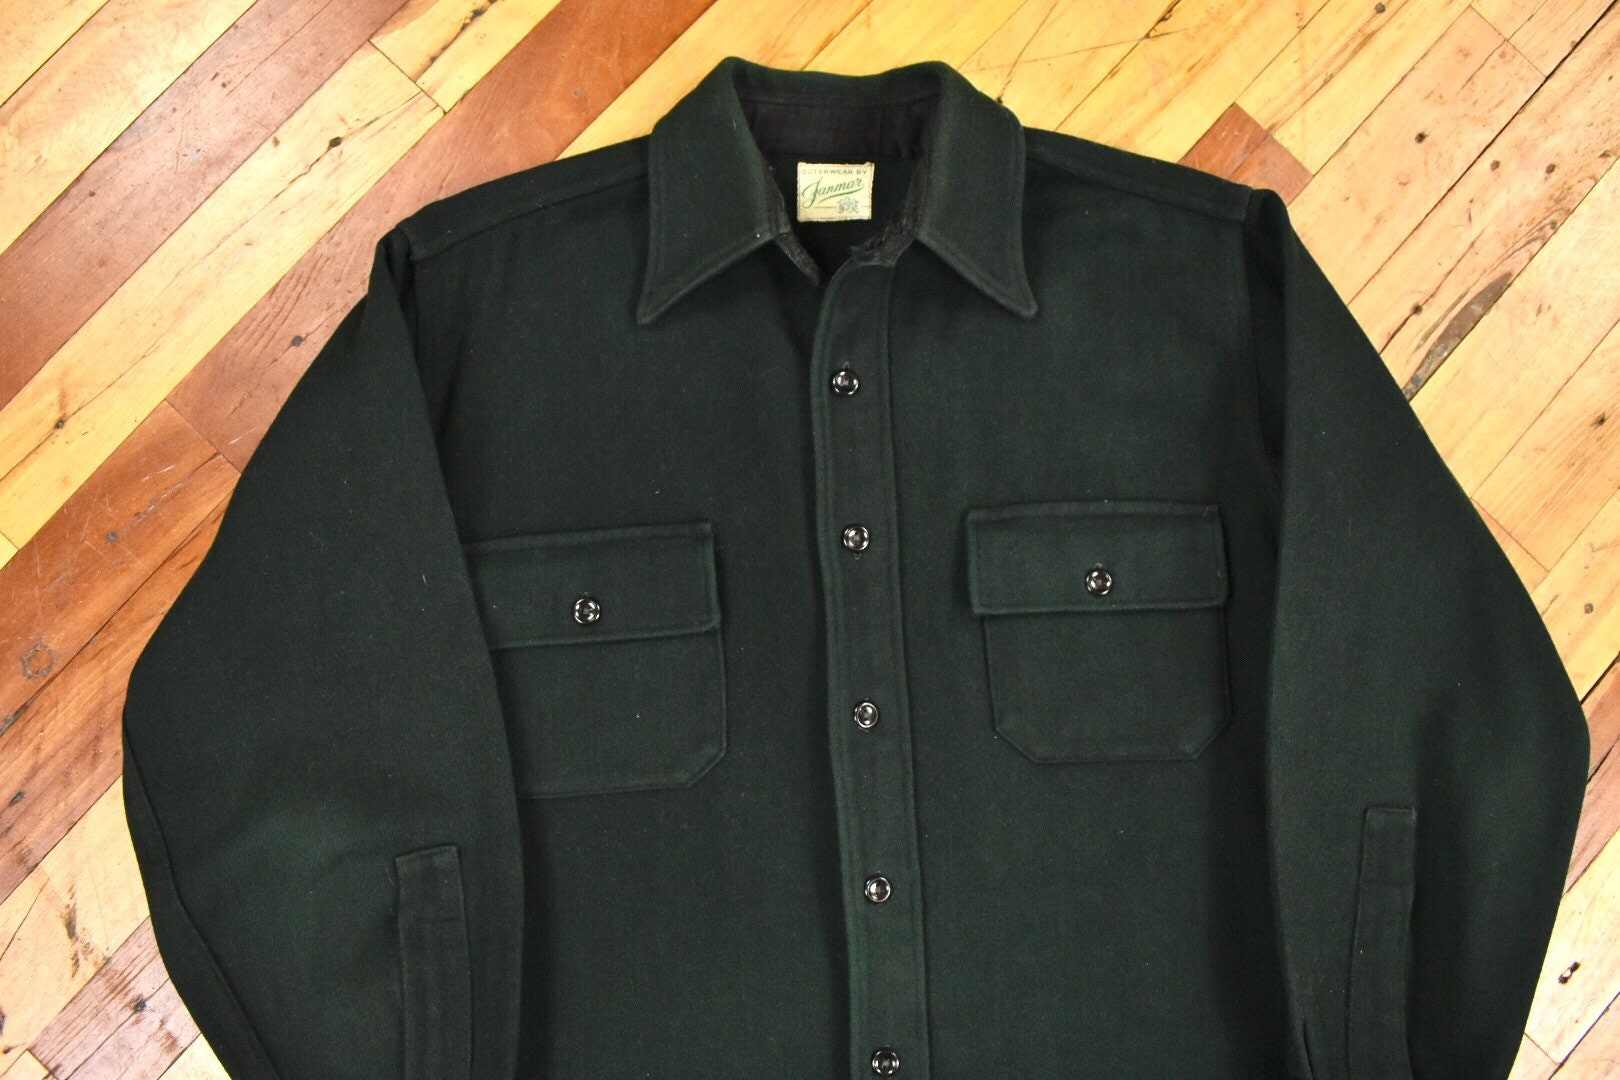 1940s Men's Shirts, Sweaters, Vests 40S 50S Cpo ML Shirt-Jacket Green Wool Vintage Workwear $20.00 AT vintagedancer.com